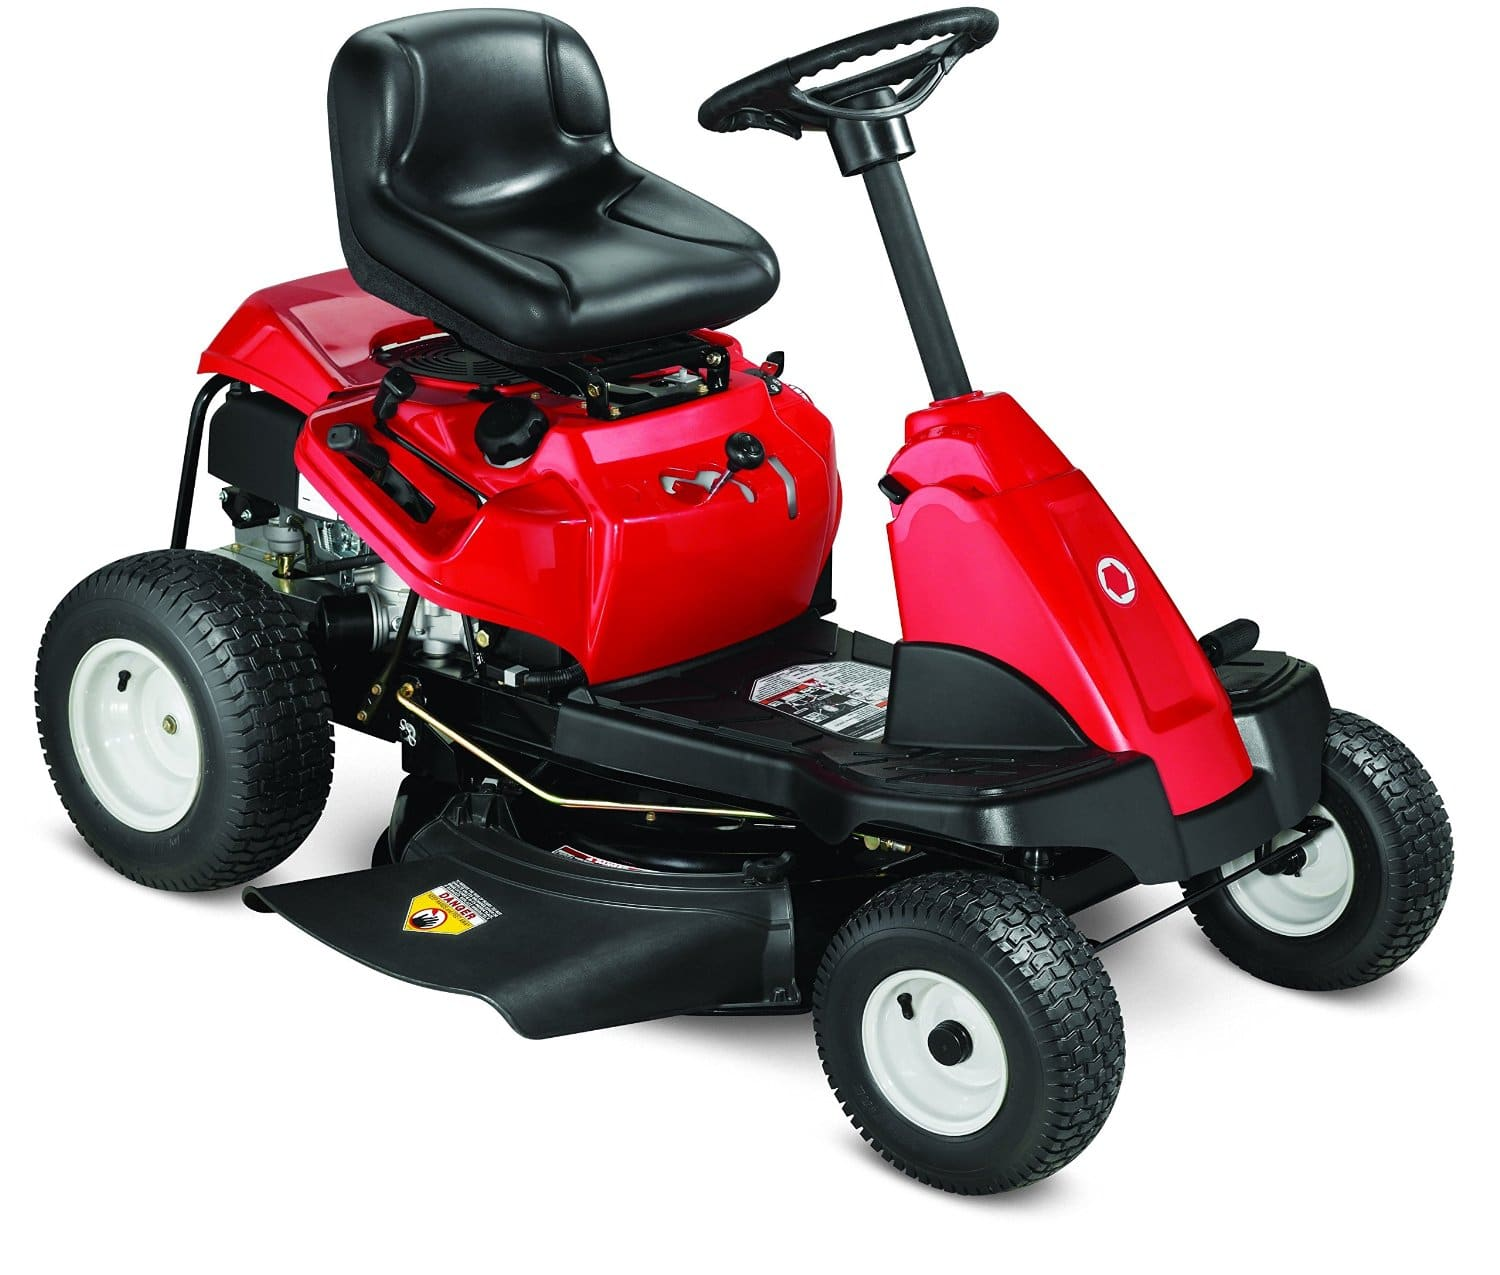 10 Best Riding Lawn Mowers Reviews Of 2016 Lawn Care Pal